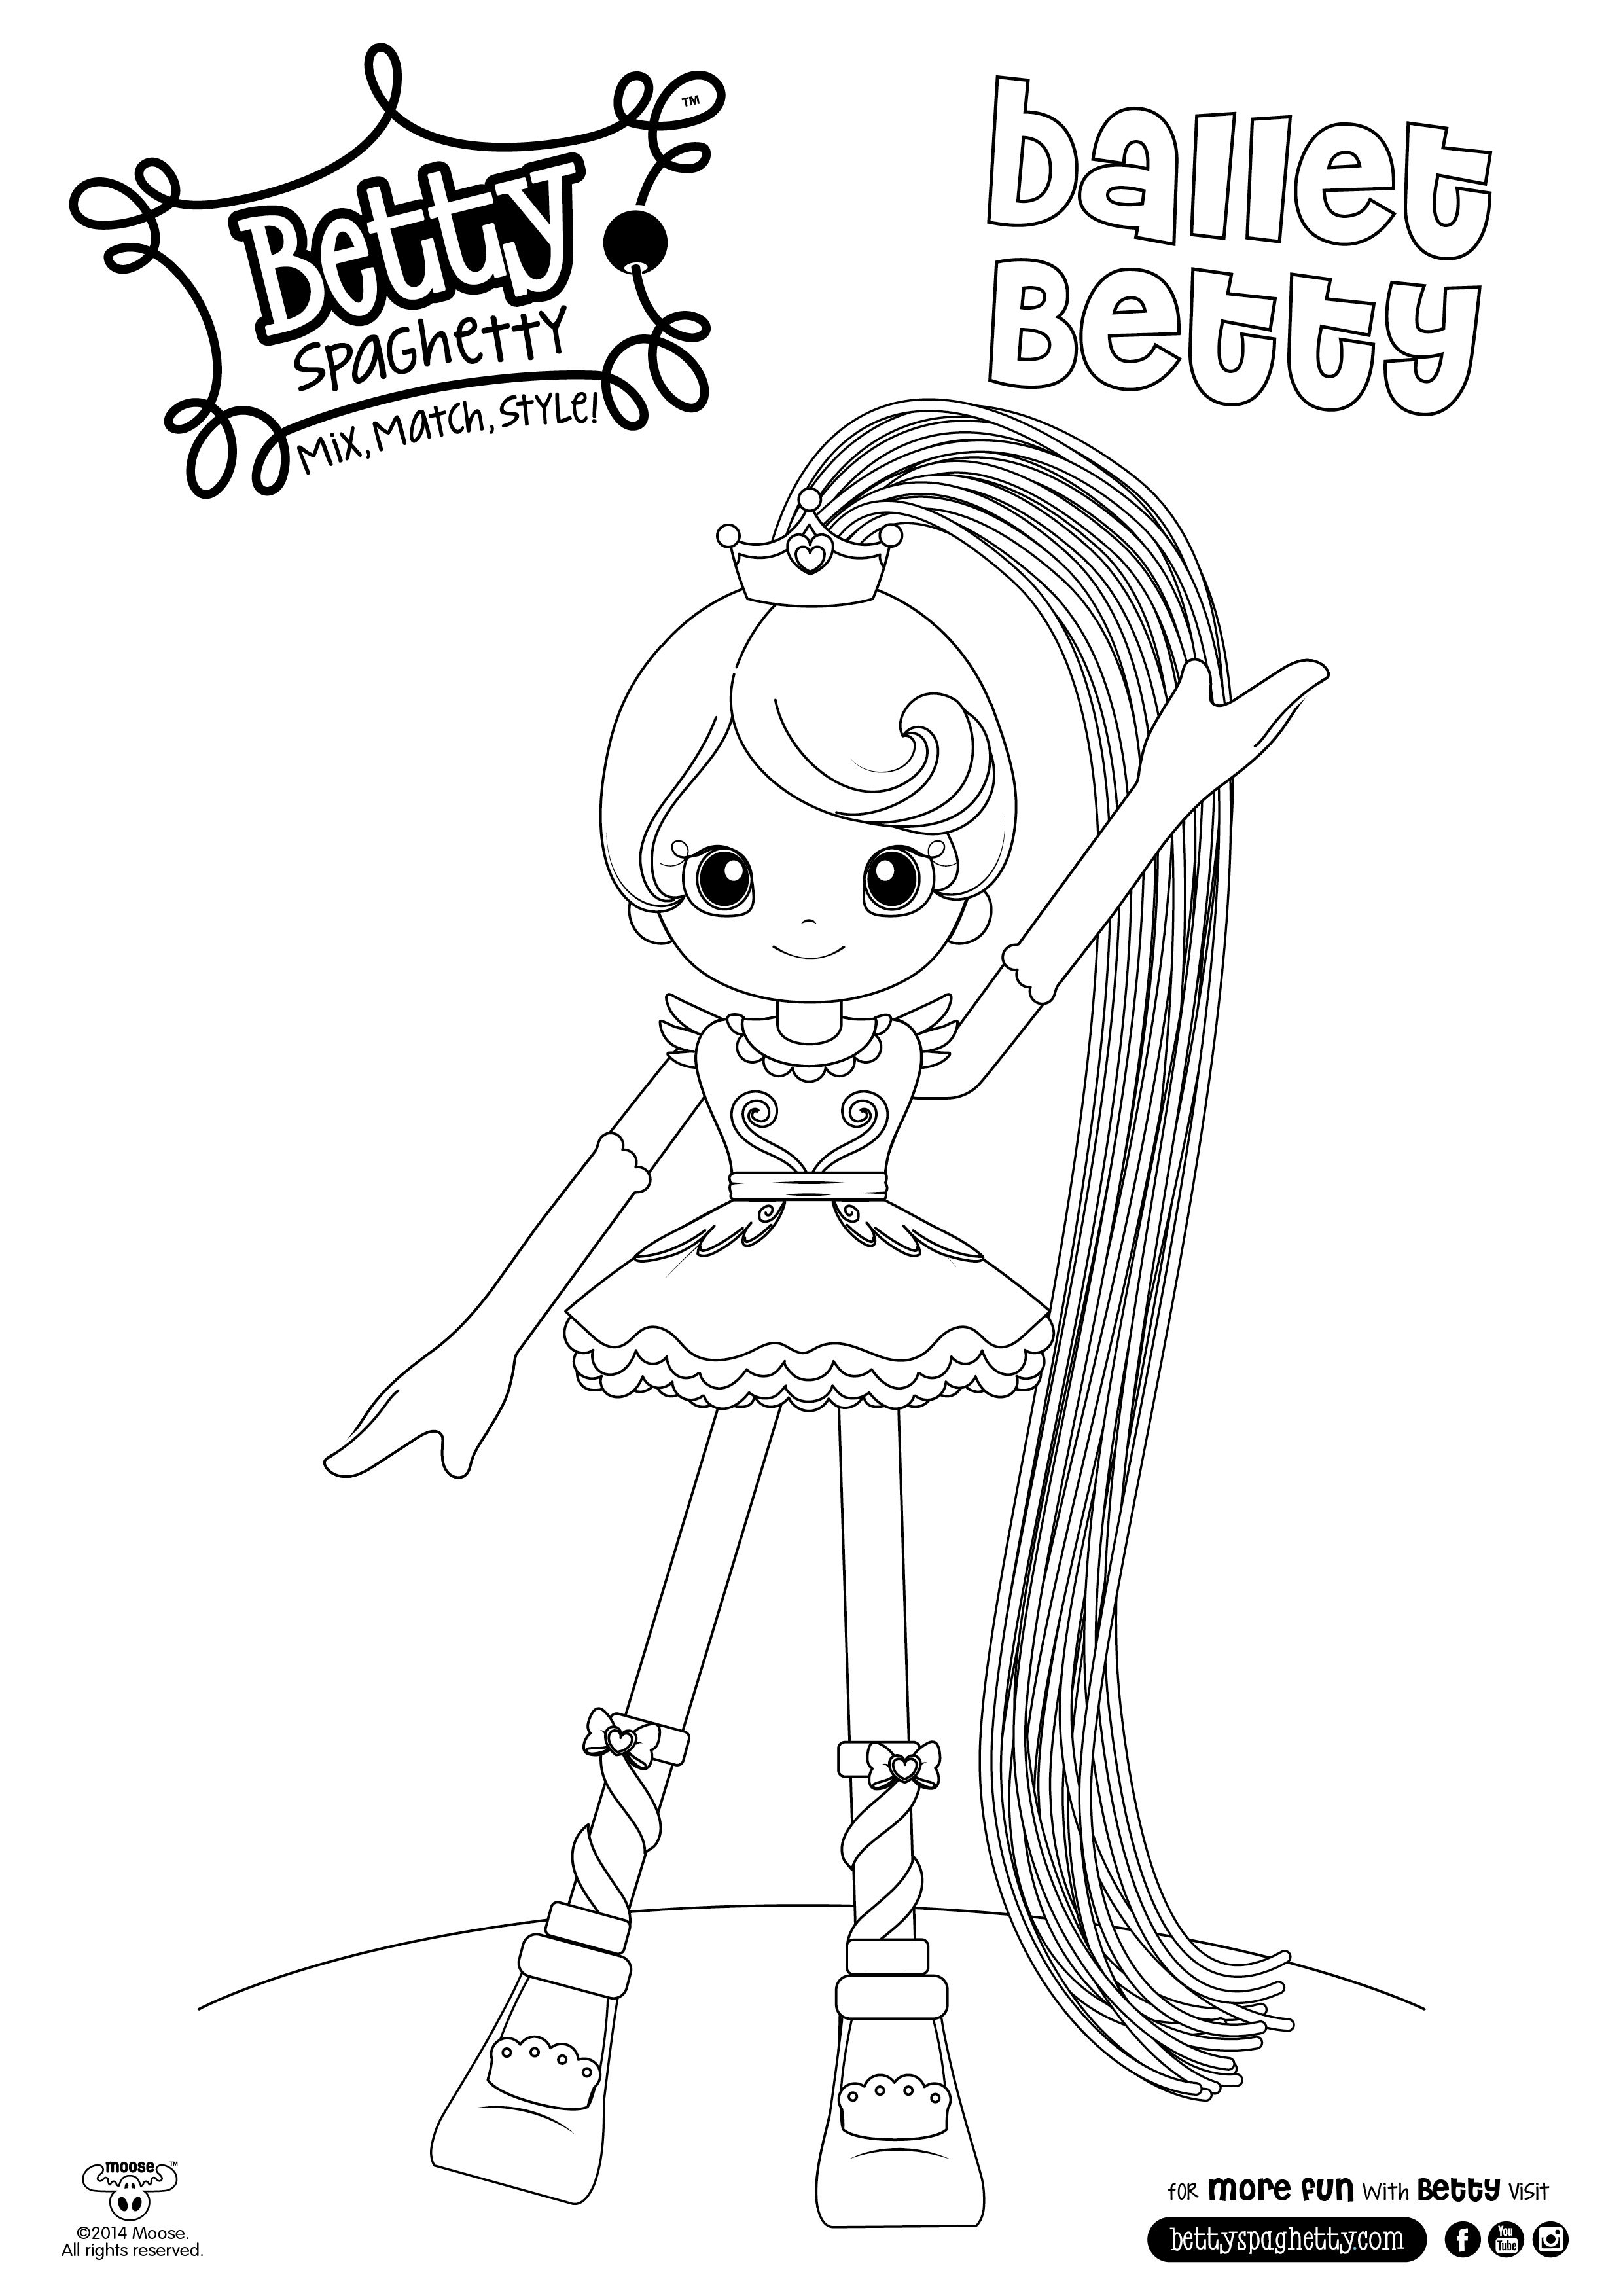 betty spaghetty coloring pages betty spaghetty coloring pages getcoloringpagescom coloring betty spaghetty pages